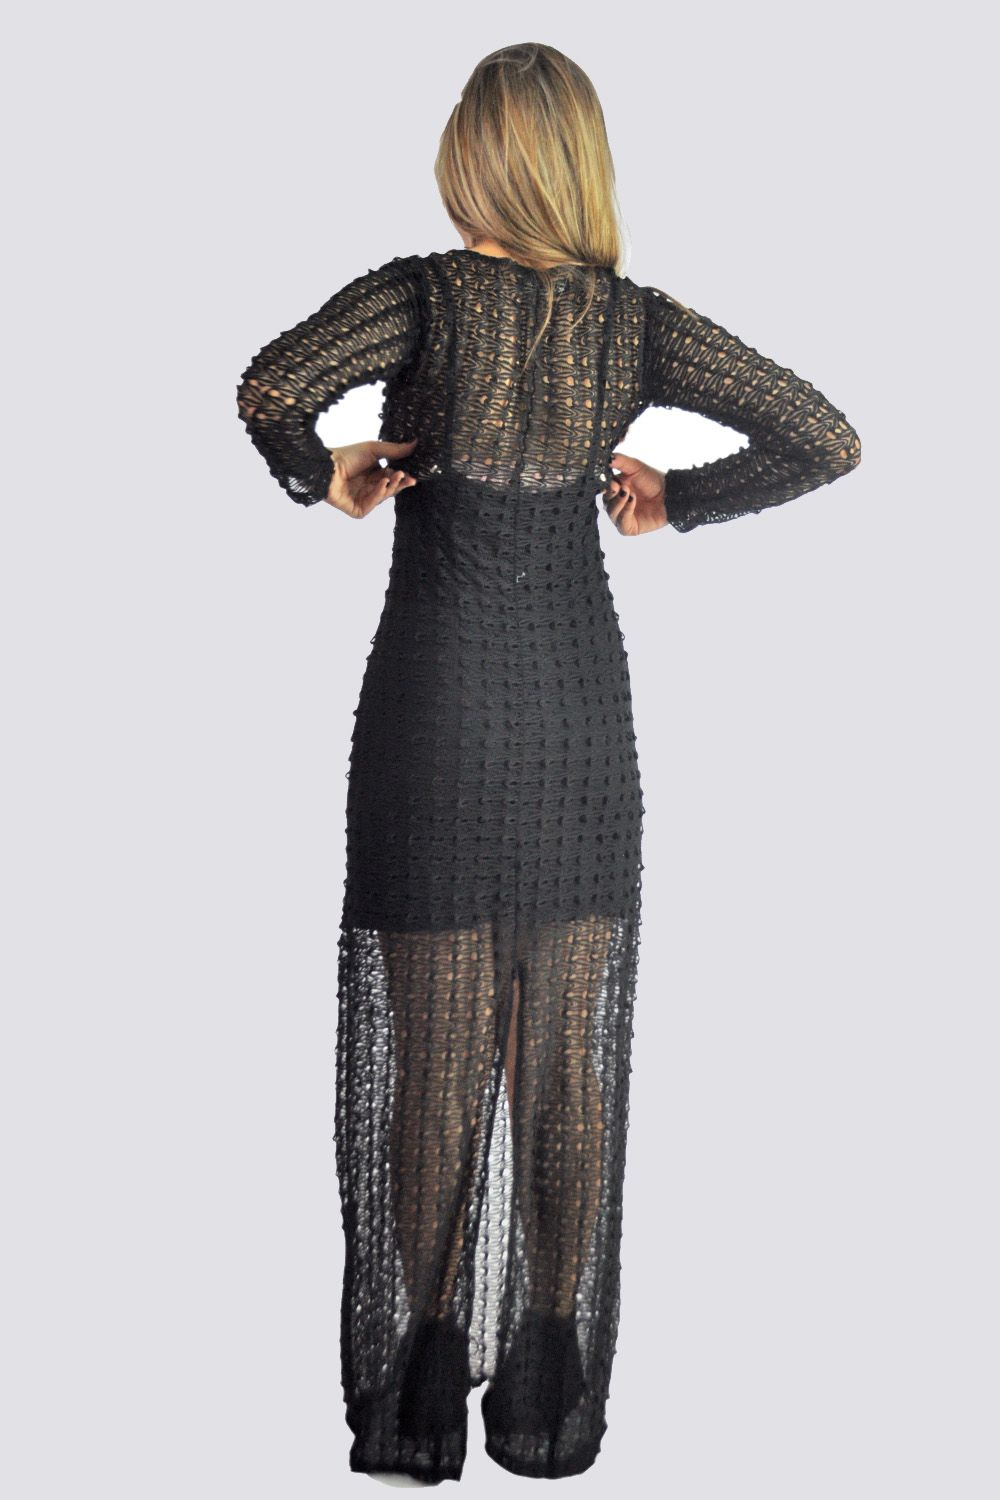 Long black crochet dress, long sleeve. Vestido longo crochet, manga longa.